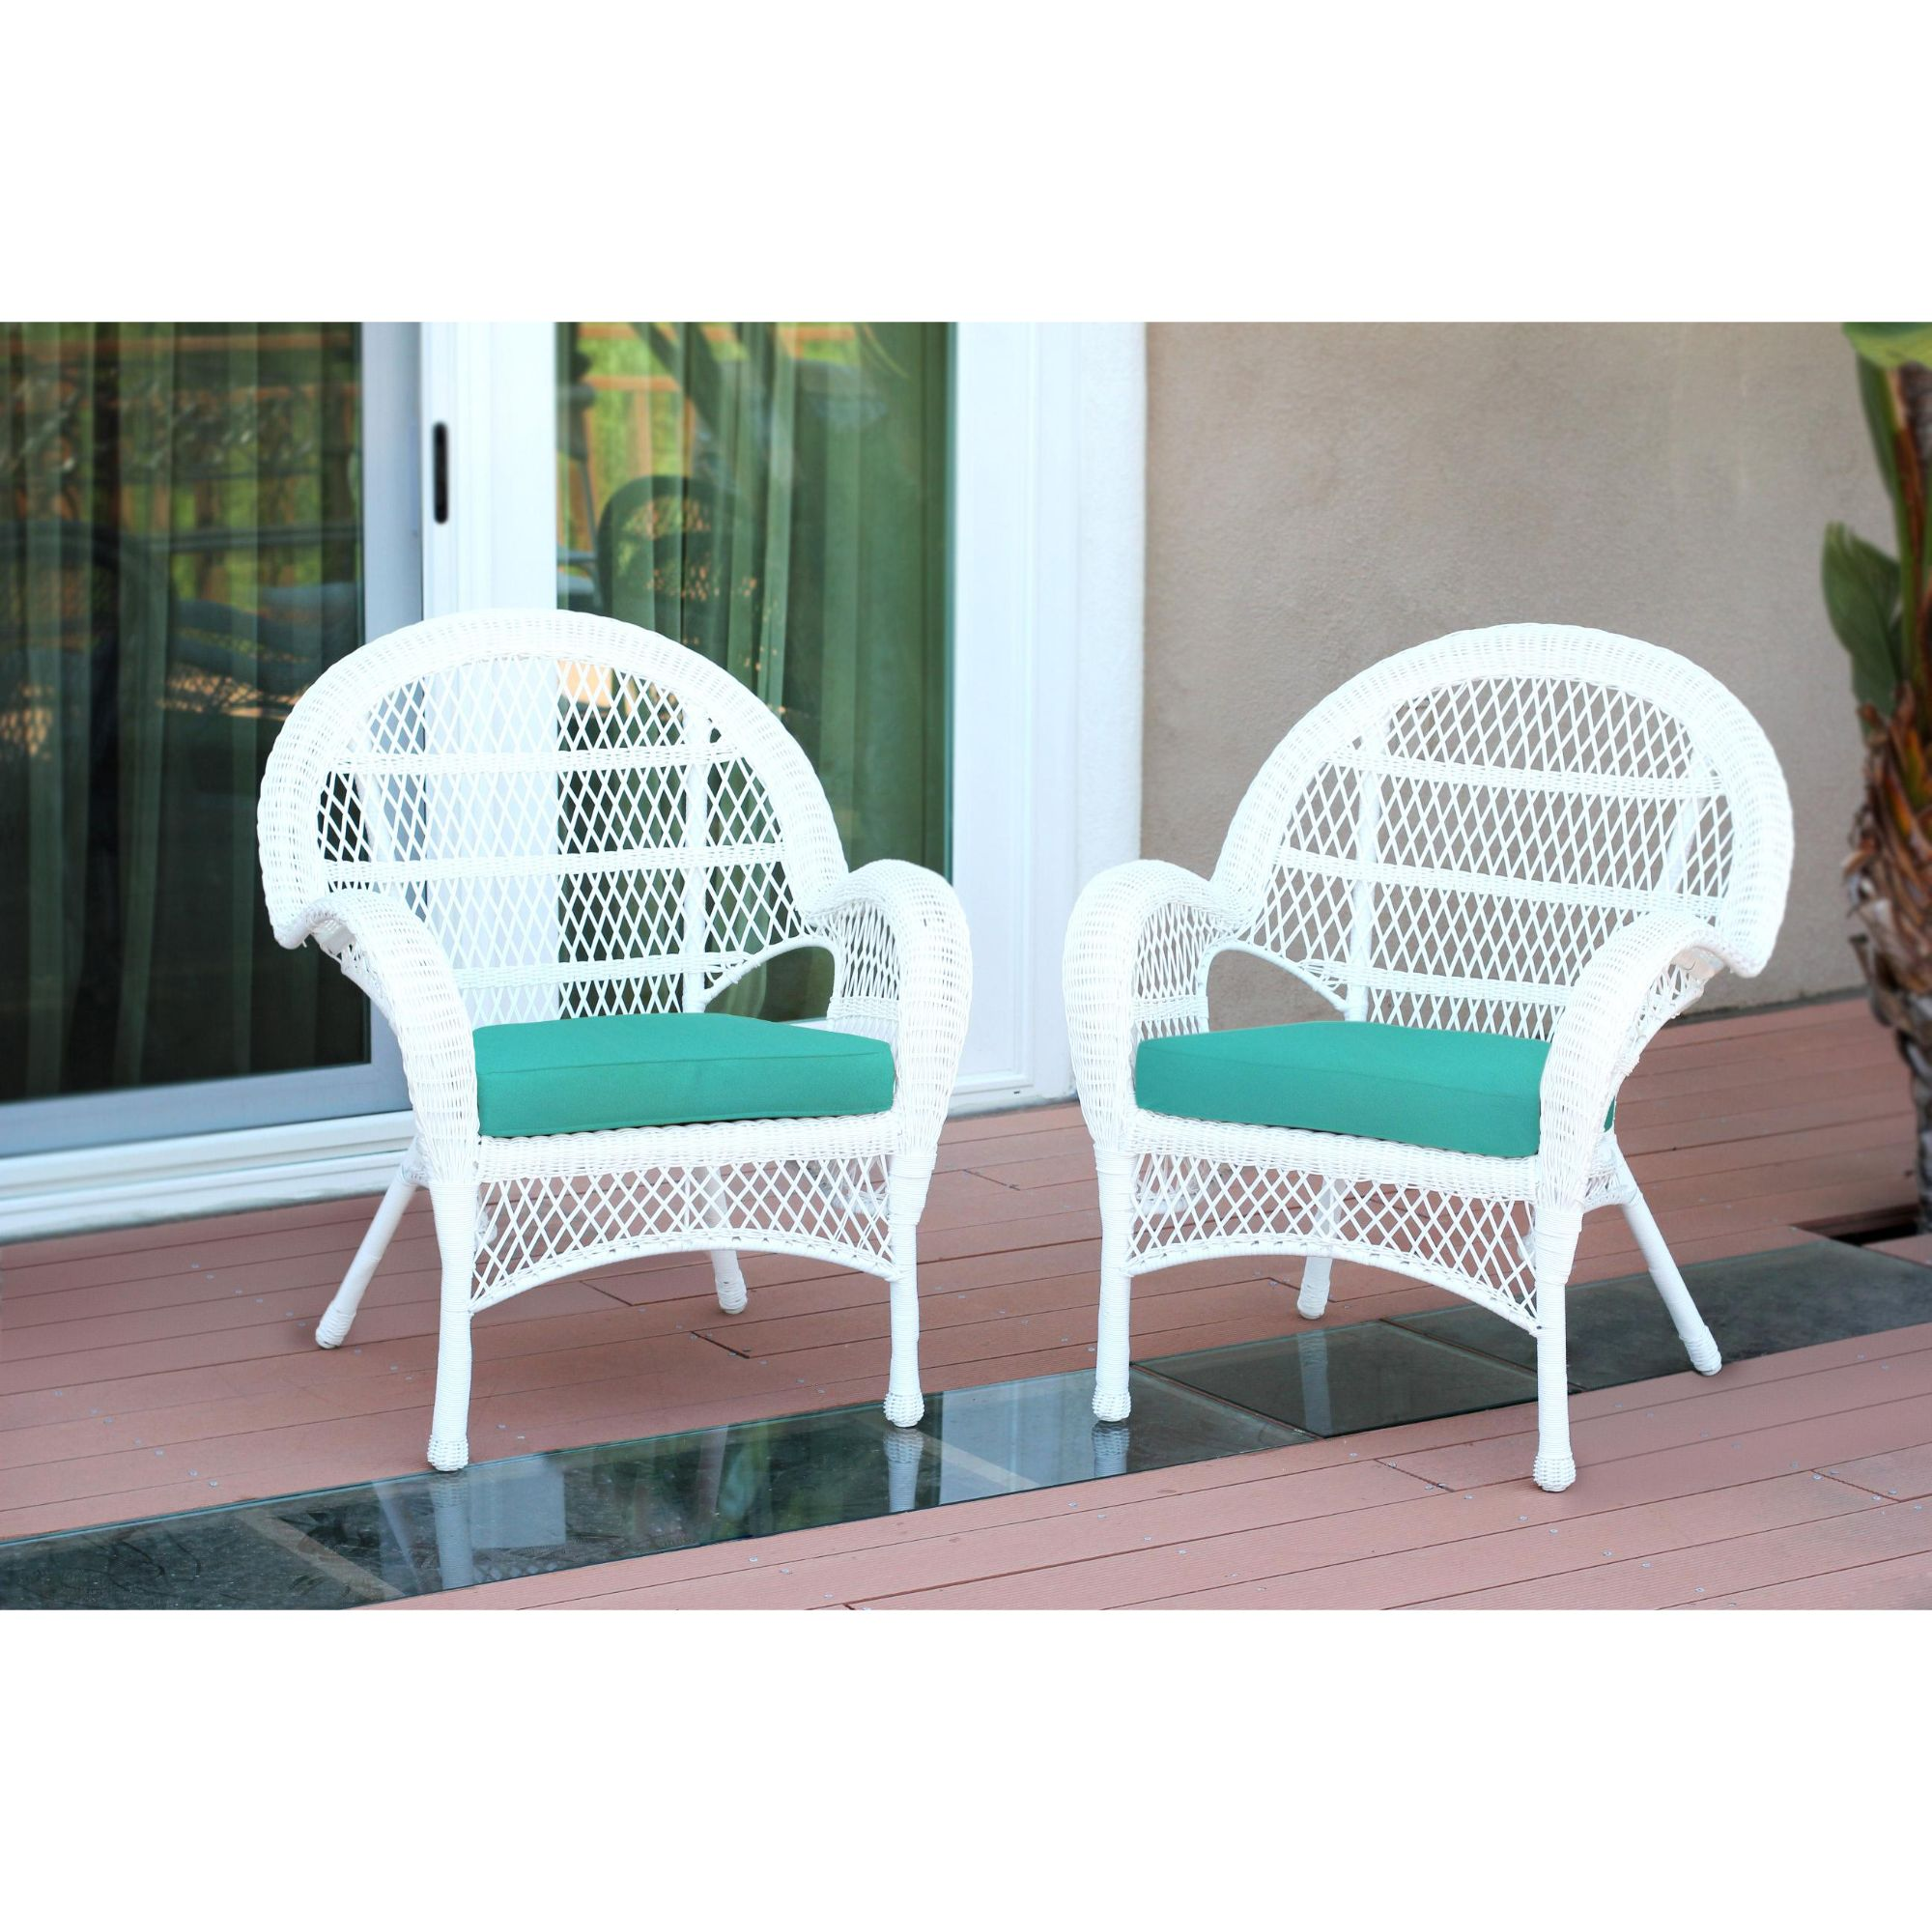 set of 2 white wicker outdoor furniture patio chairs turquoise cushions